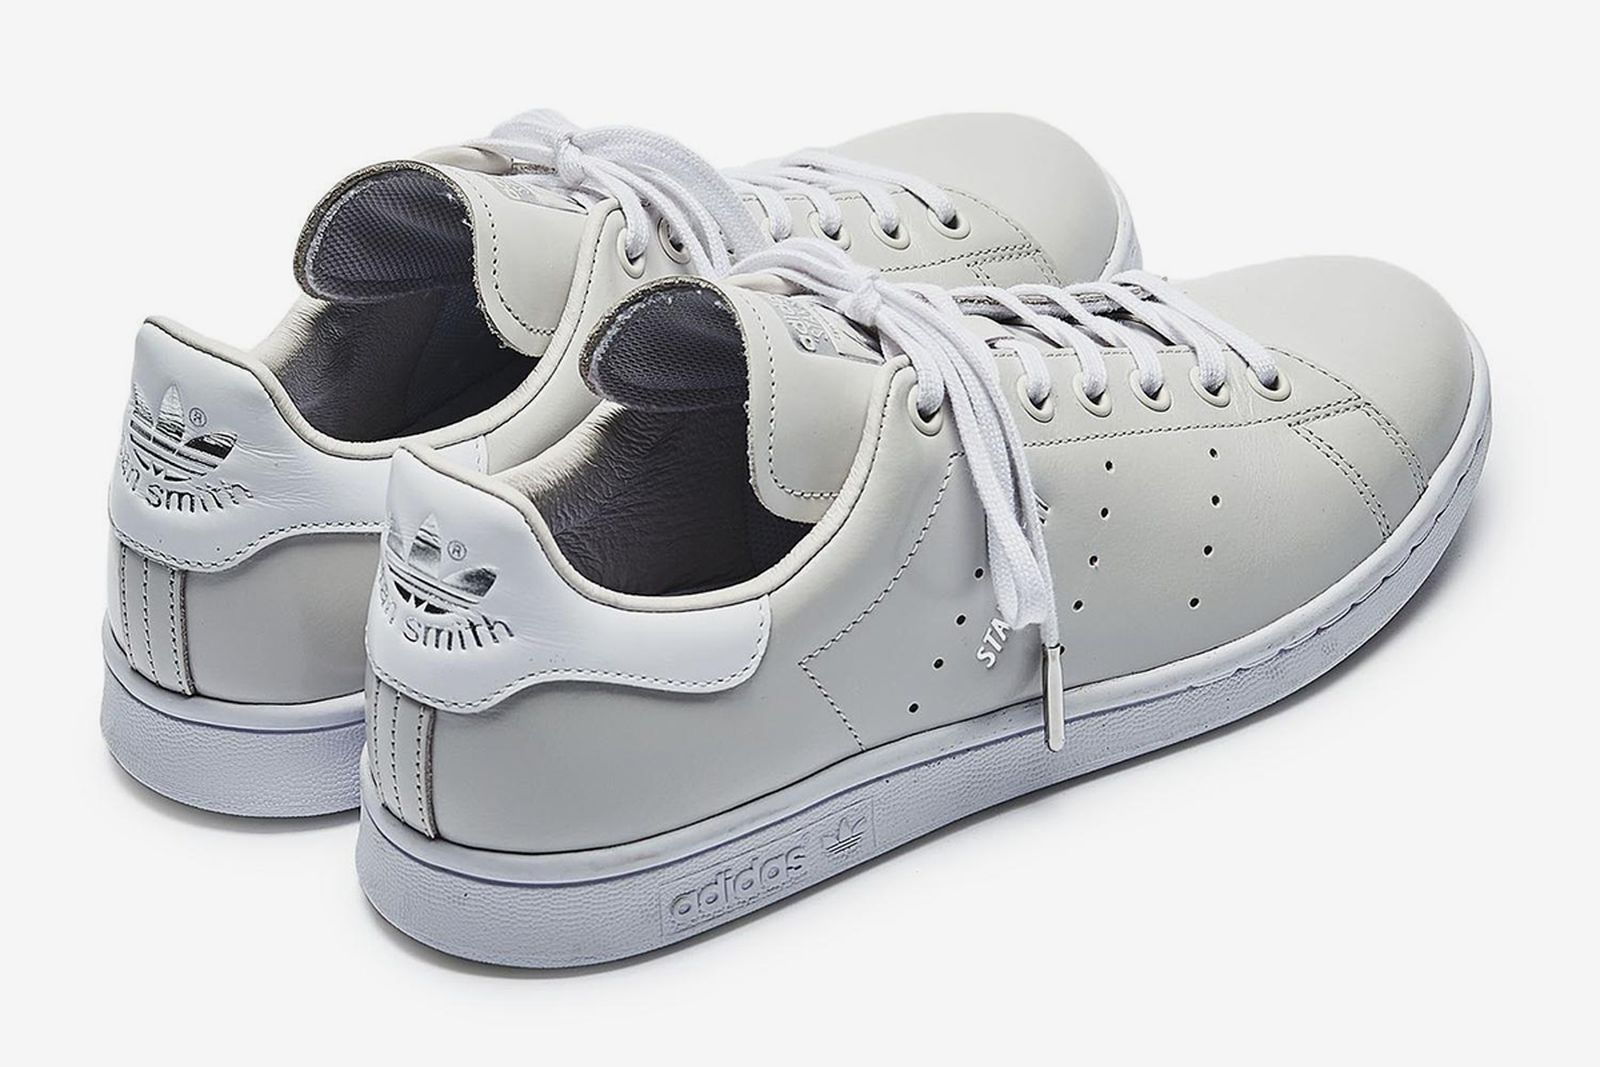 beauty-and-youth-adidas-stan-smith-release-date-price-11